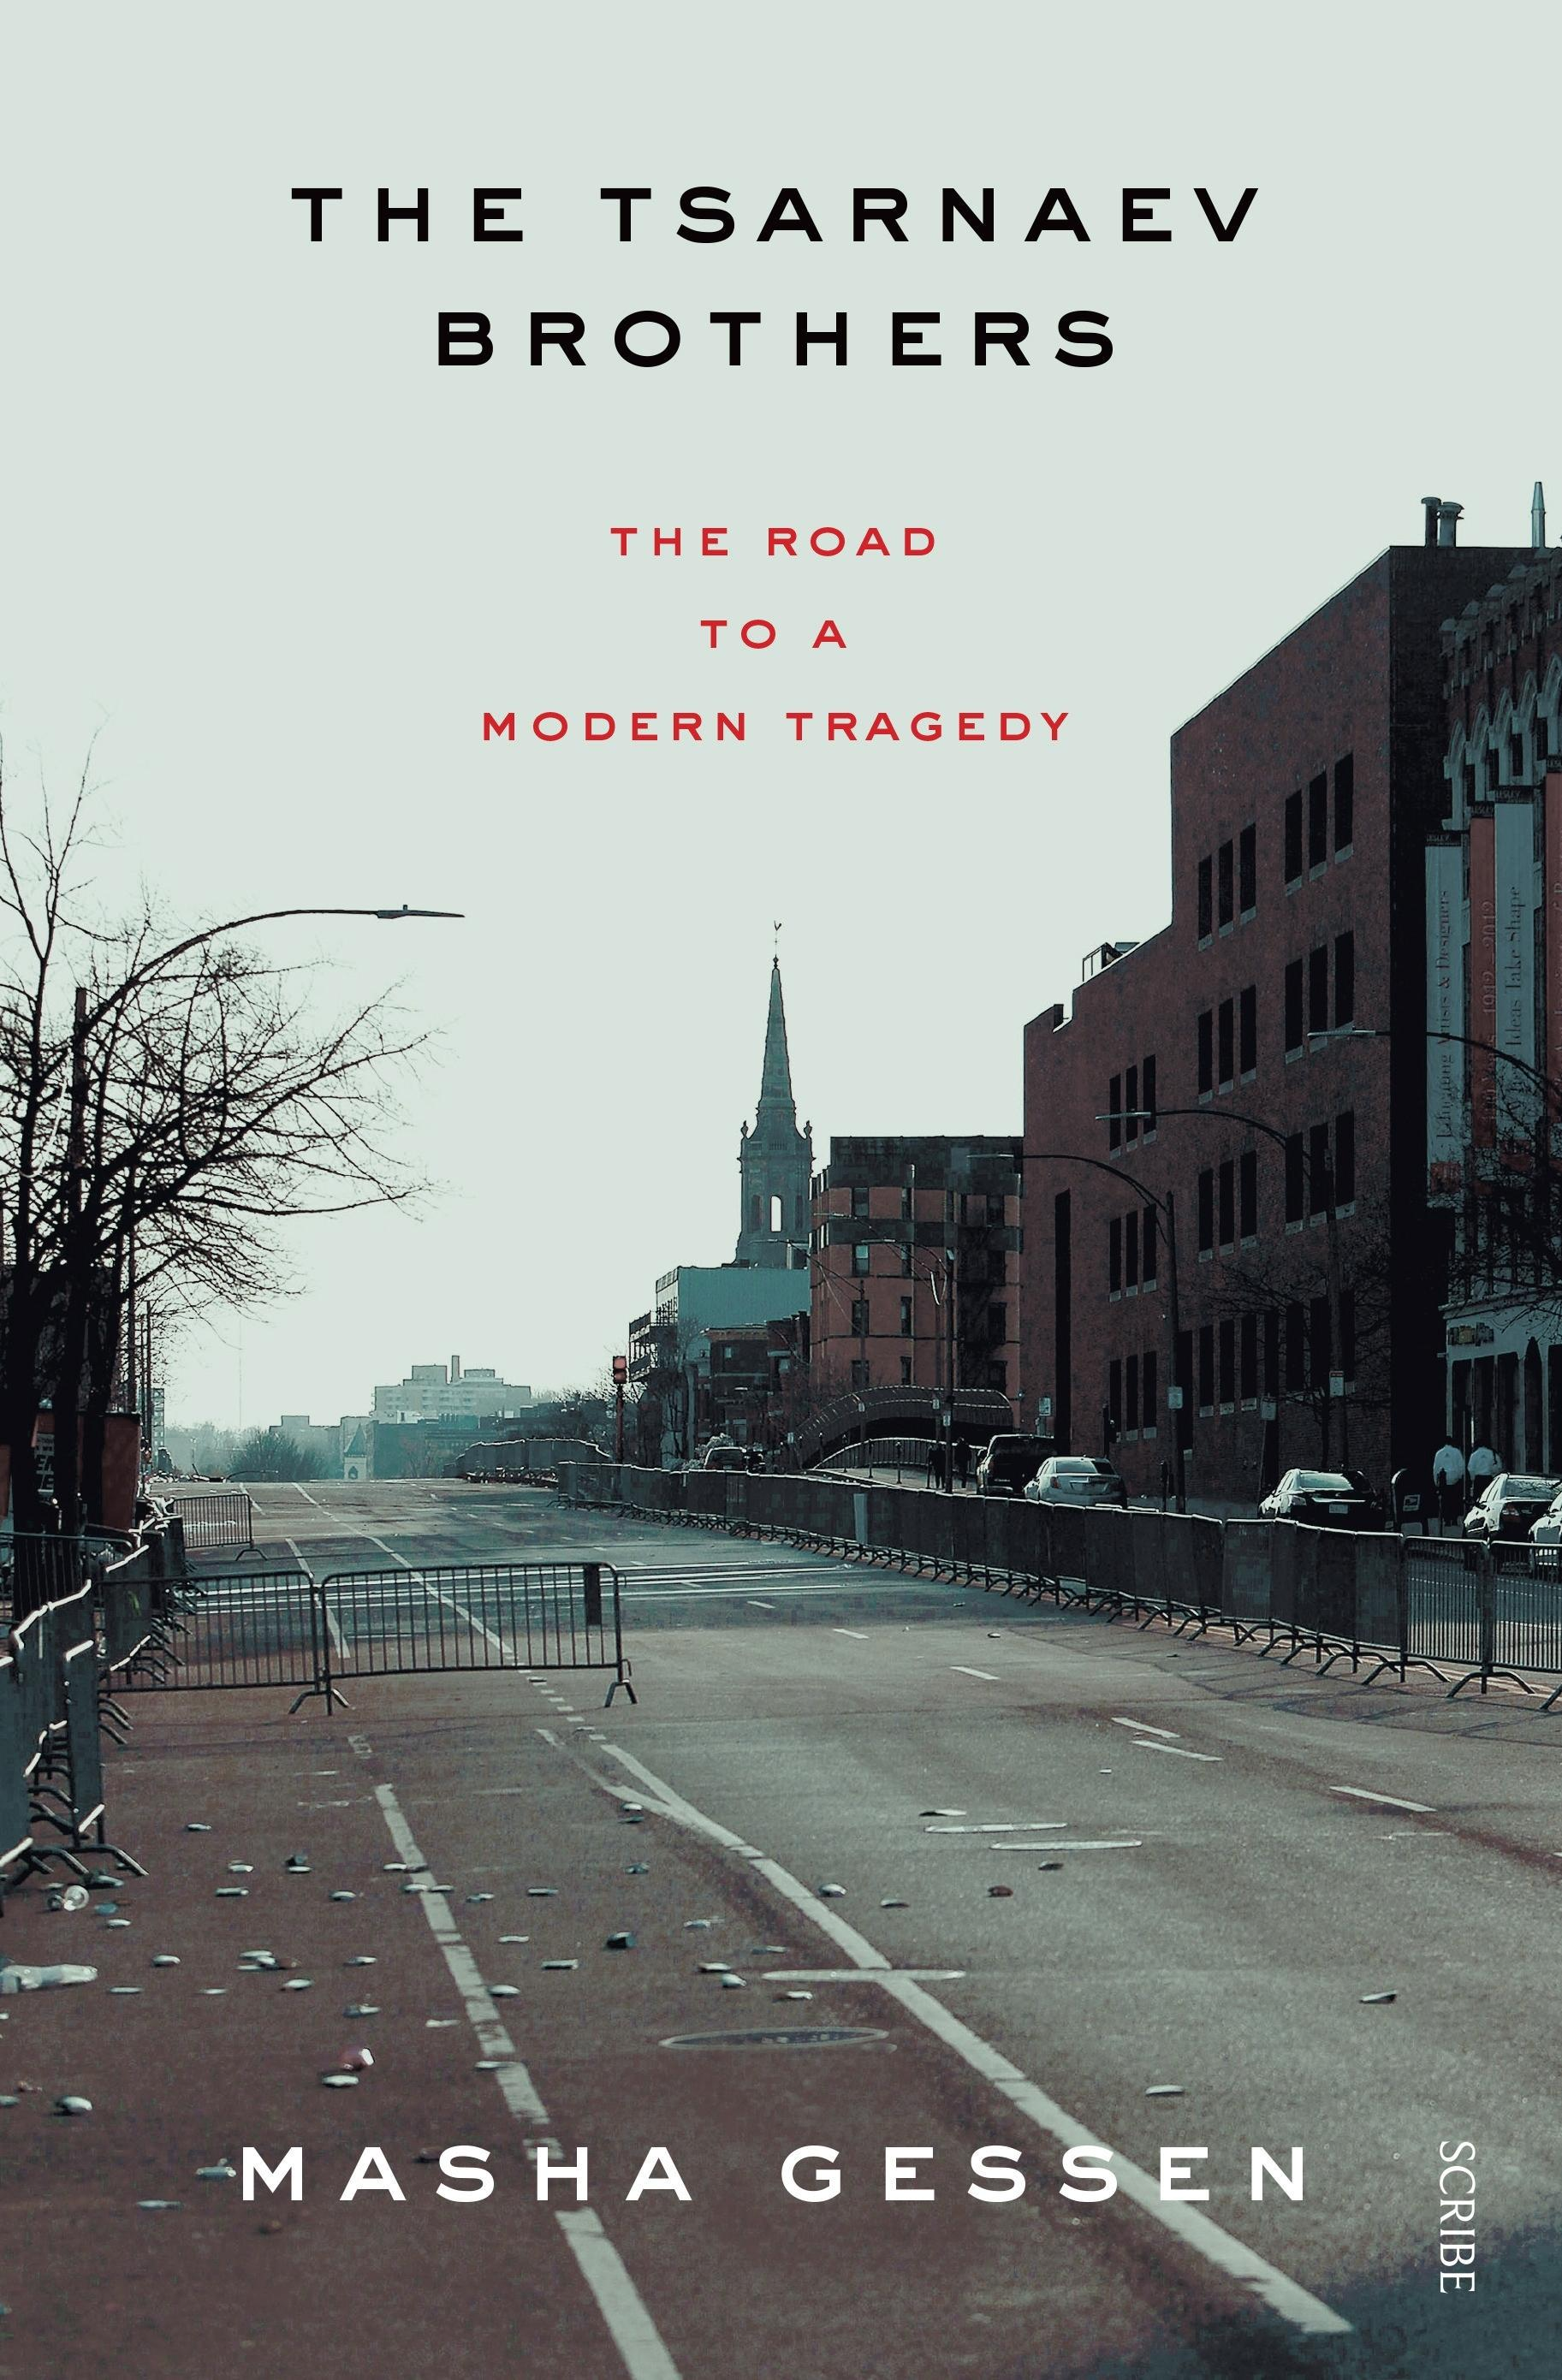 The Tsarnaev Brothers: The Road to aModernTragedy